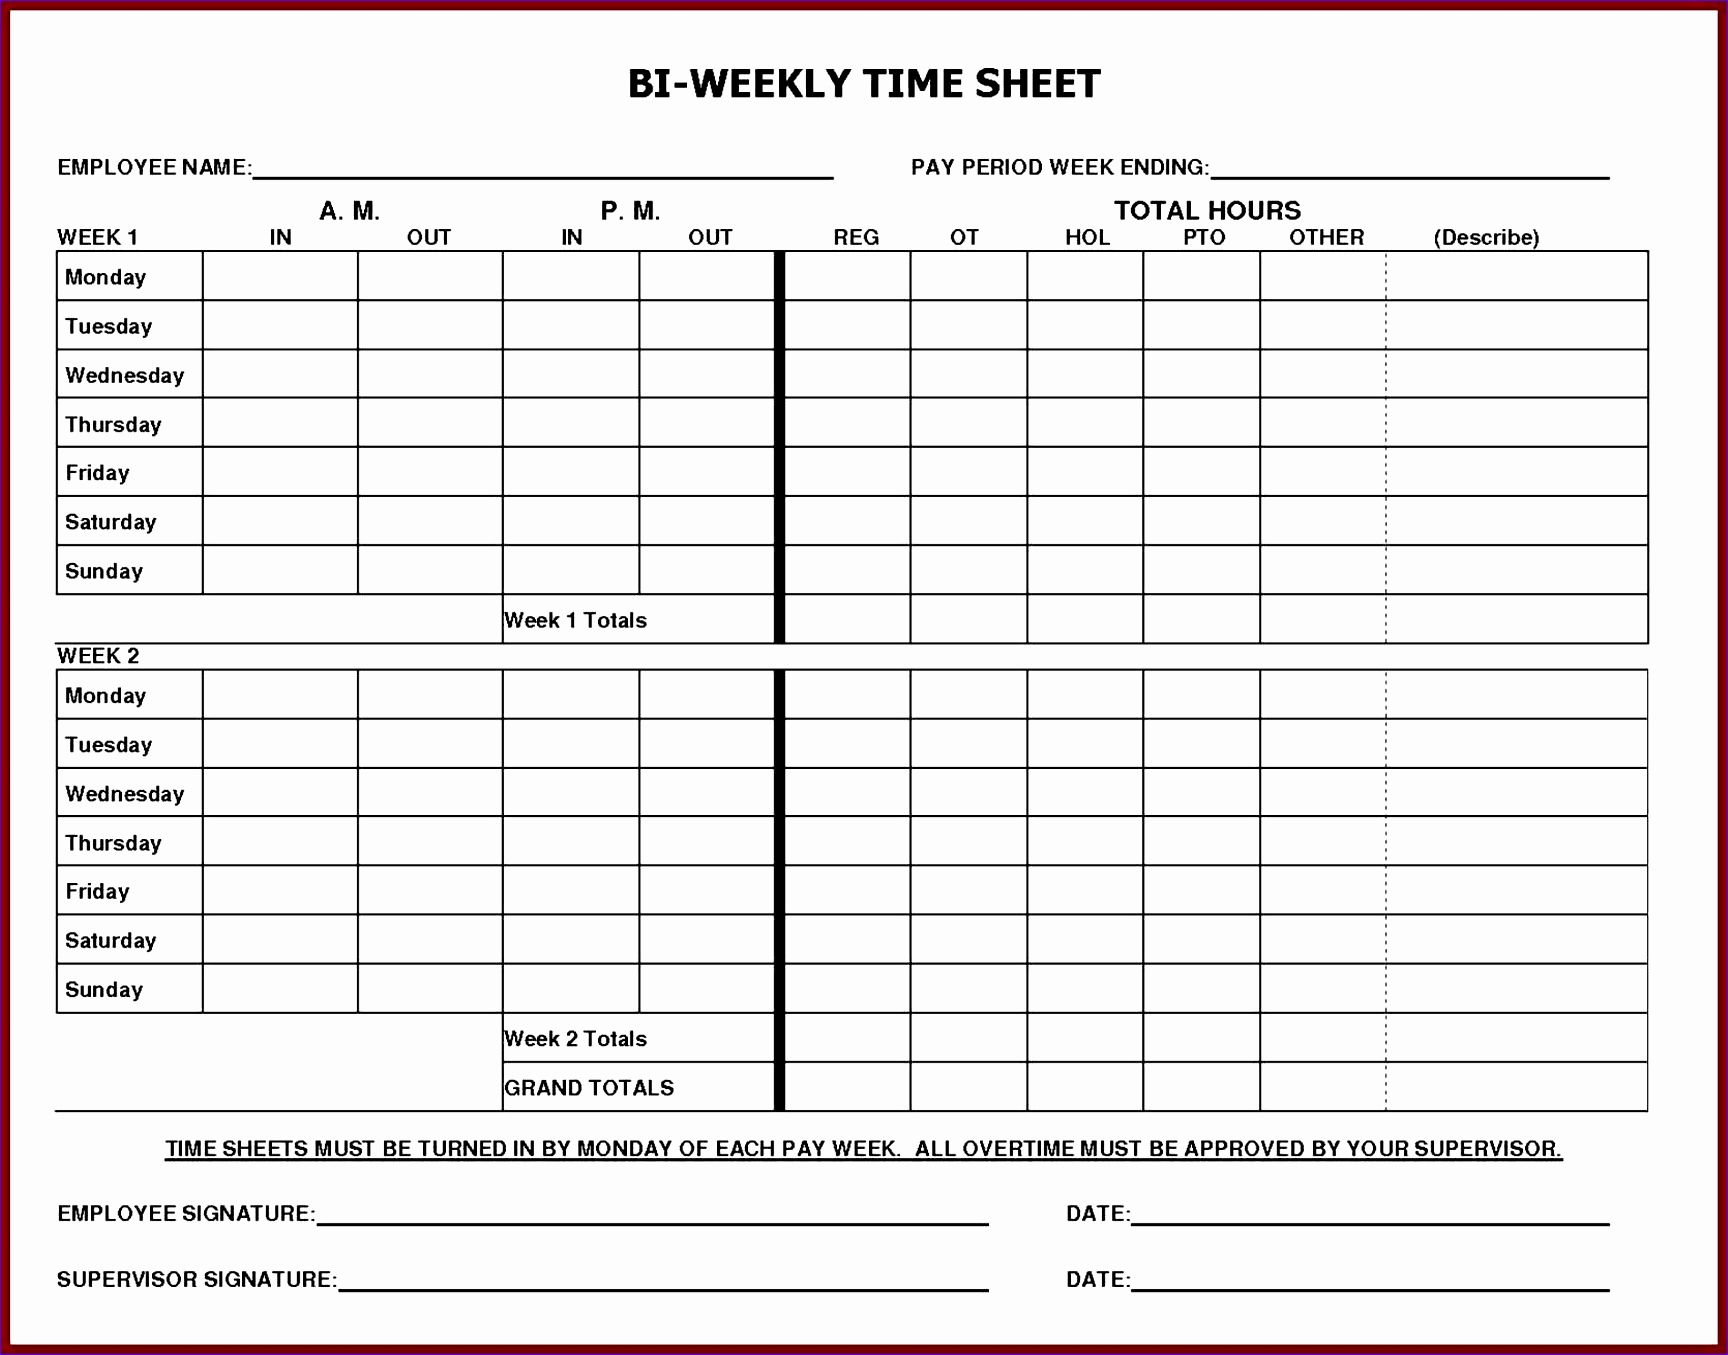 002 Remarkable Employee Monthly Time Card Template Highest Clarity Full